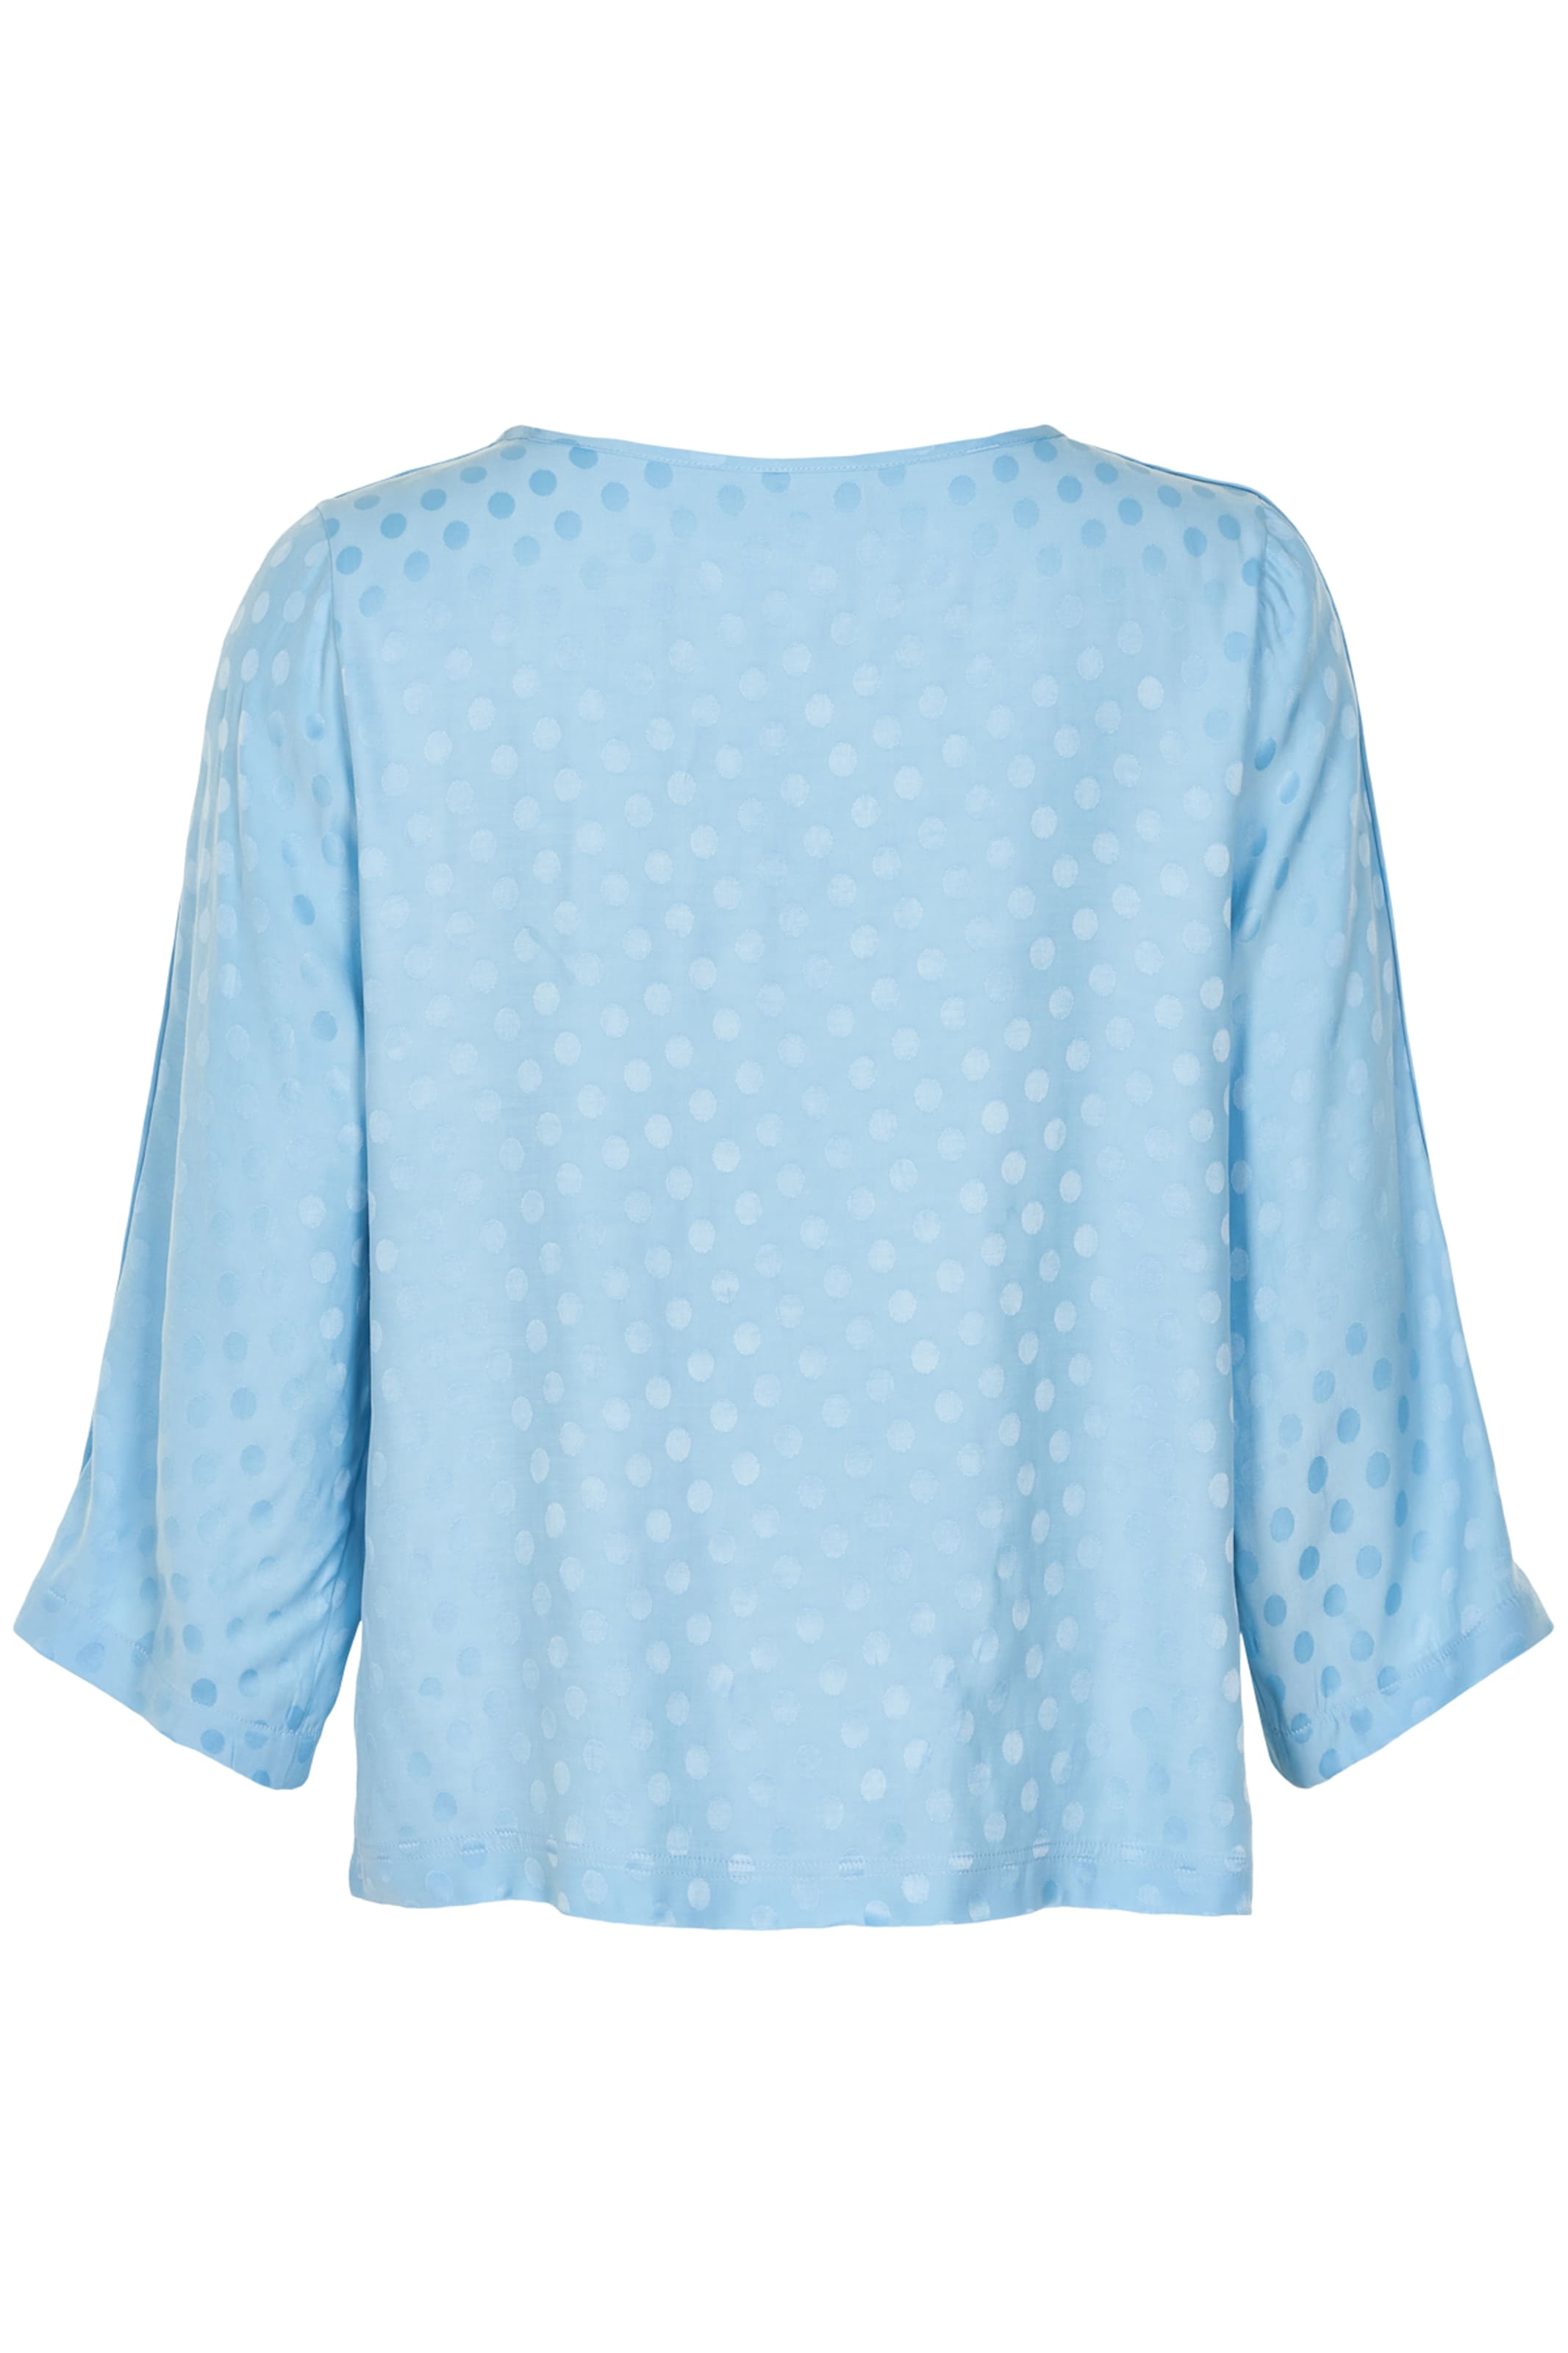 Front Front Bluse Bluse In 'june' In Hellblau 'june' qVpzMSU